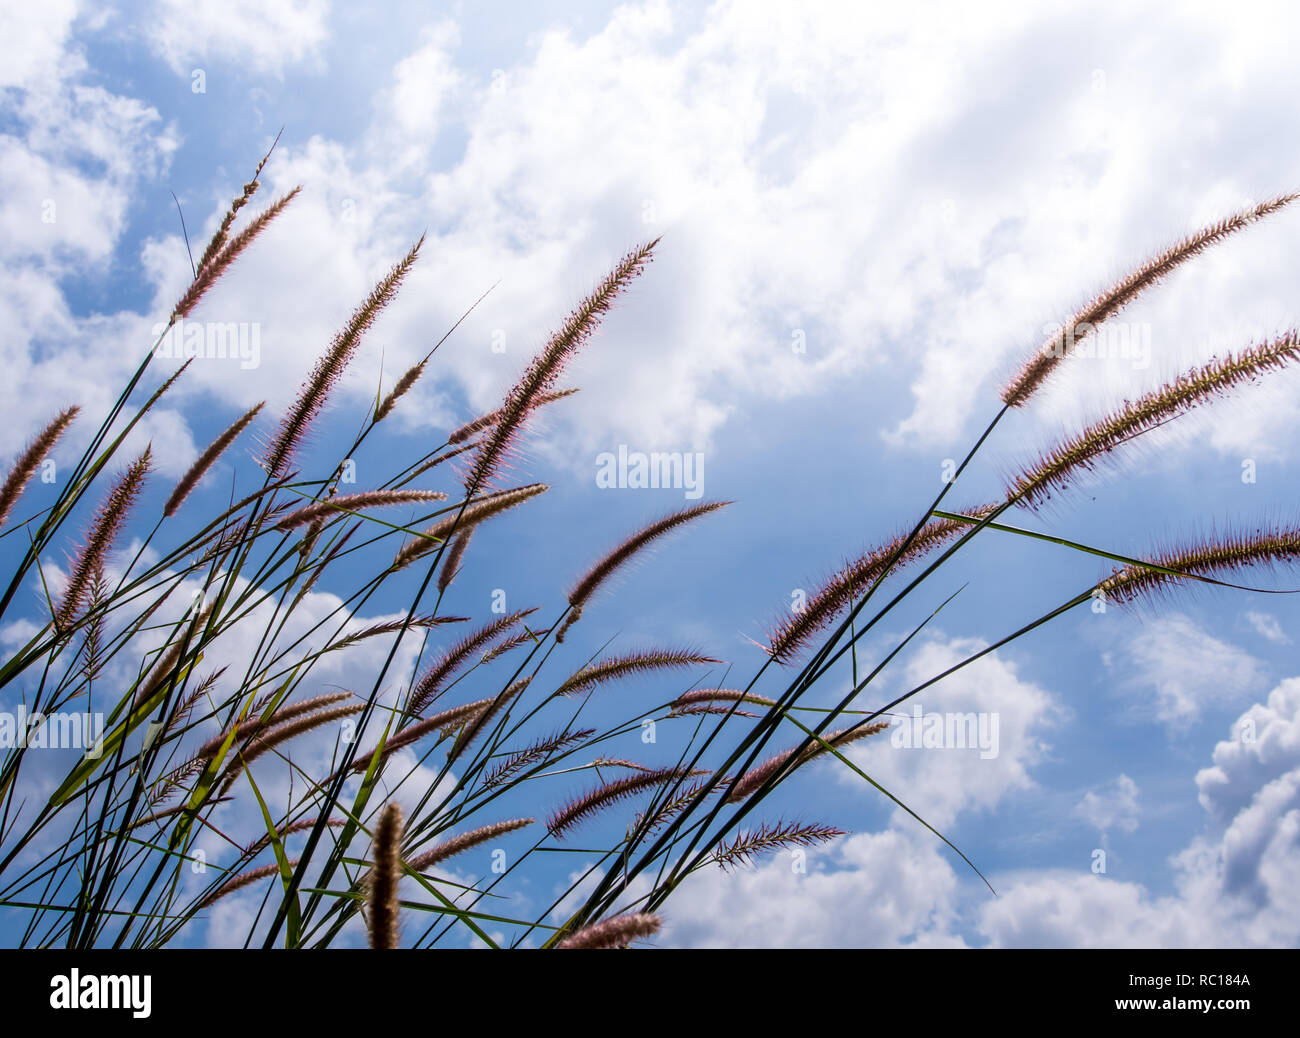 Flower of Napier Elephant grass and the fluffy clouds in blue sky - Stock Image